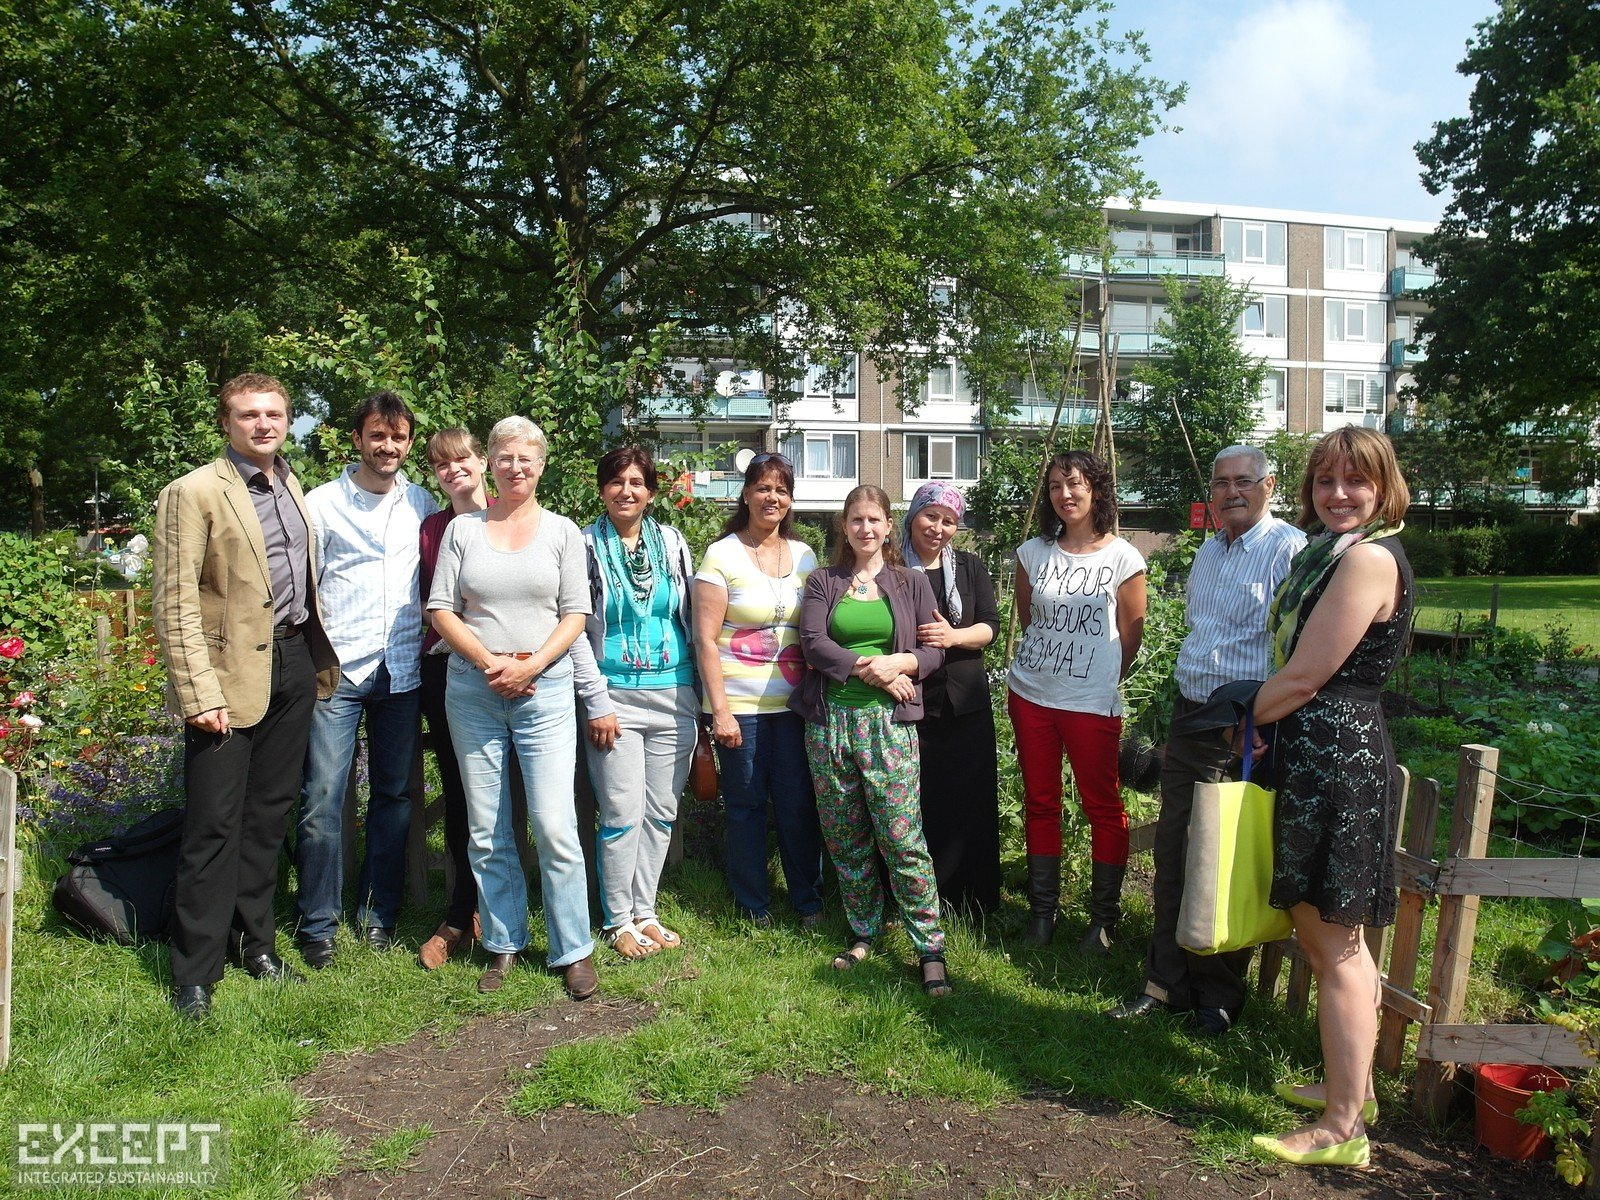 The urban gardens in Schiebroek-Zuid - Some of the people that made the Schiebroek-Zuid urban gardens possible